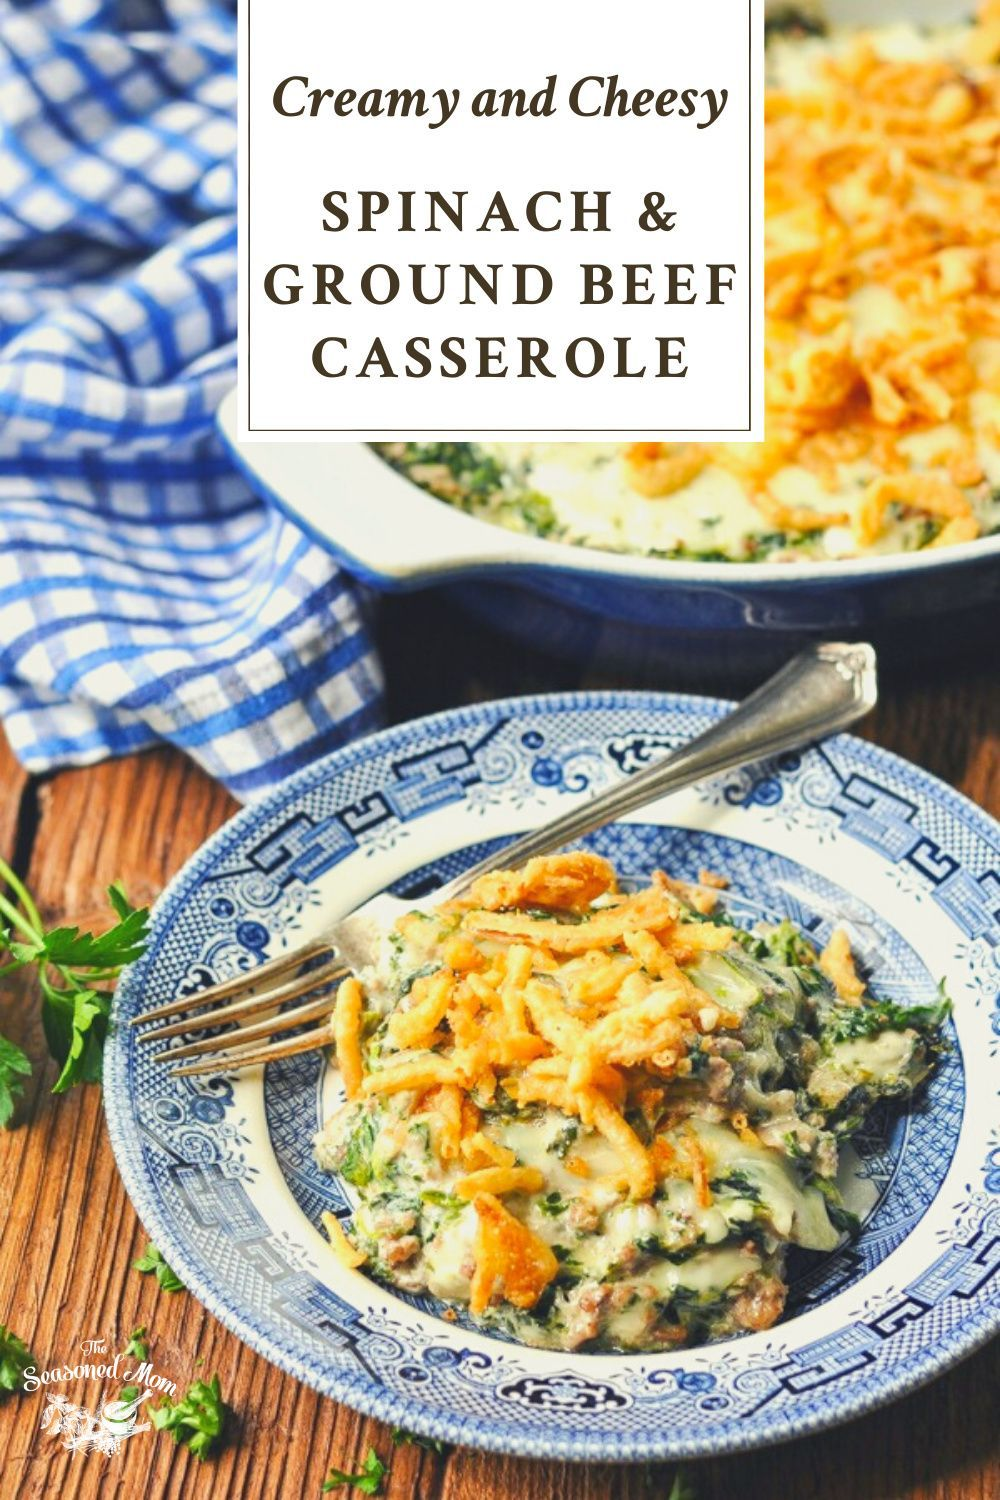 Spinach And Ground Beef Casserole Recipe In 2020 Ground Beef Beef Casserole Recipes Beef Casserole